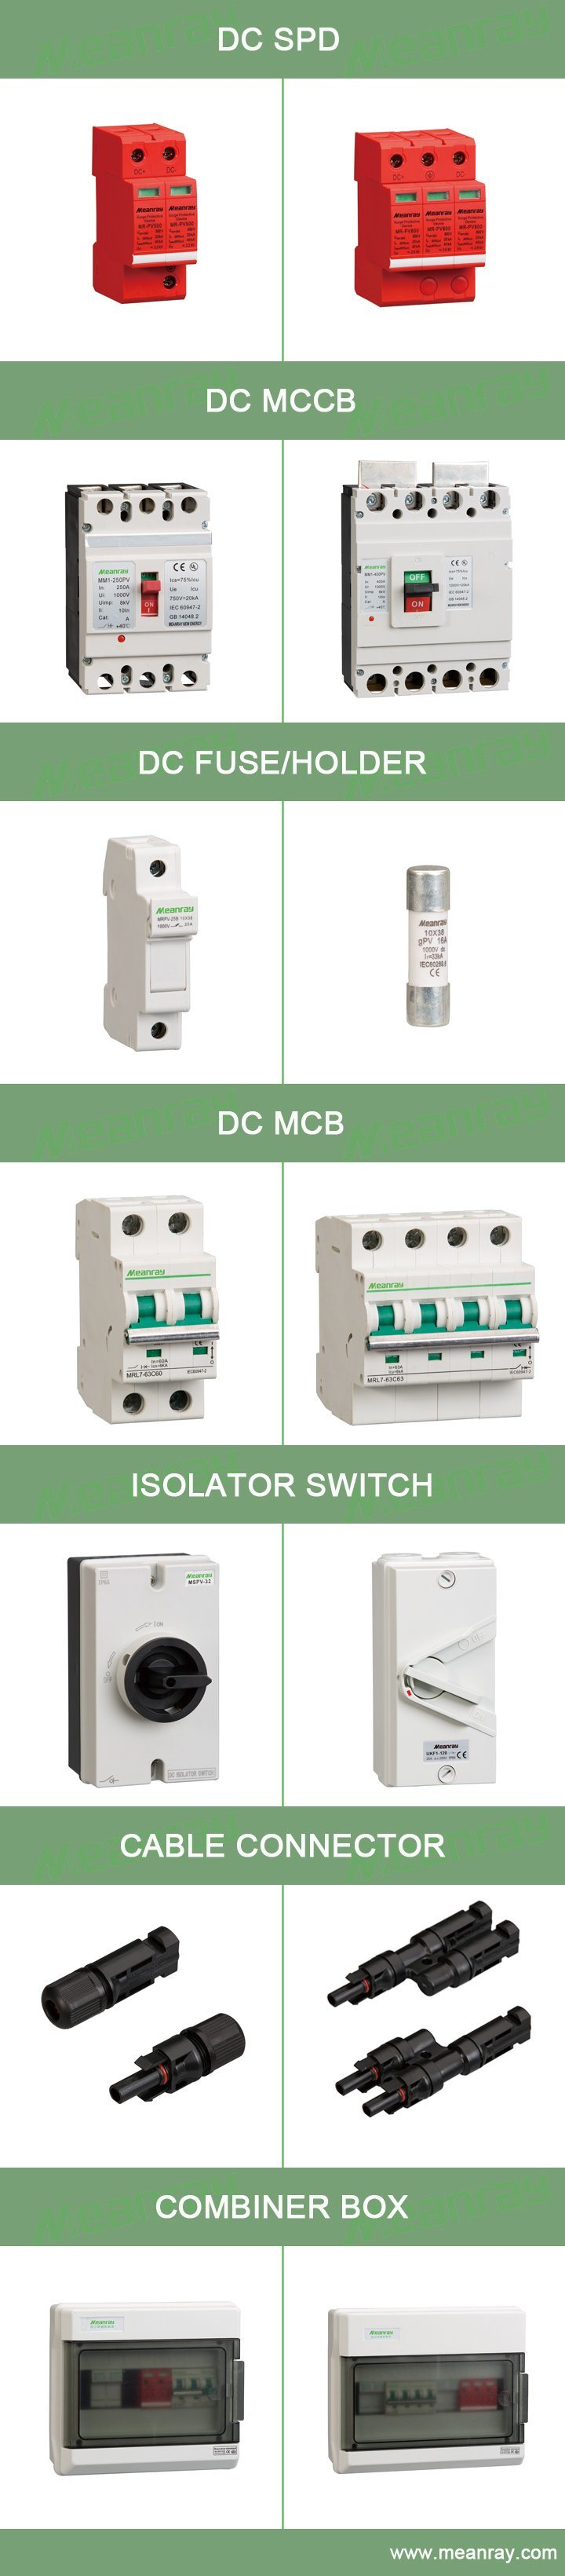 4mm2 Photovoltaic Cable Twin Core Dc Extension China Cord Fuse Box Related Products